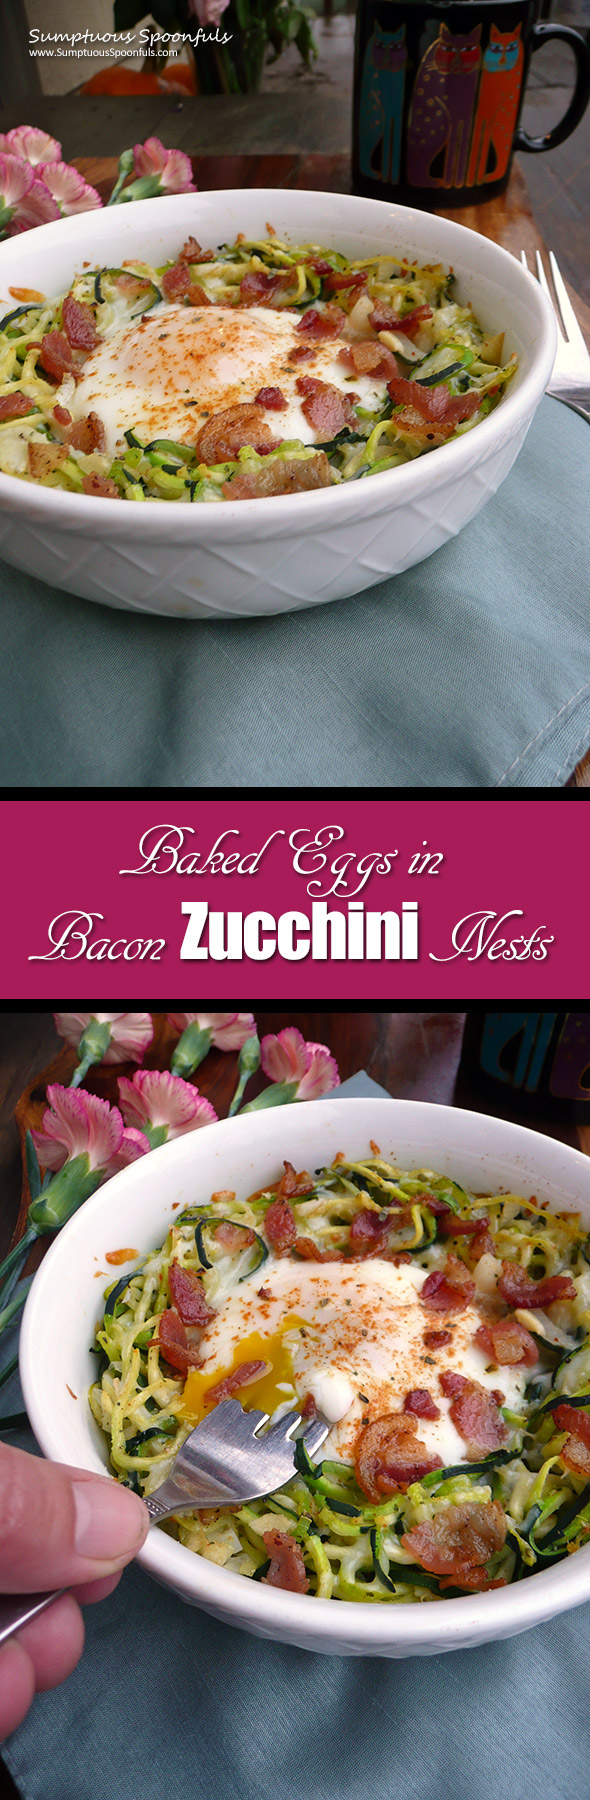 Baked Eggs in Bacon Zucchini Nests ~ Sumptuous Spoonfuls #easy #breakfast #recipe